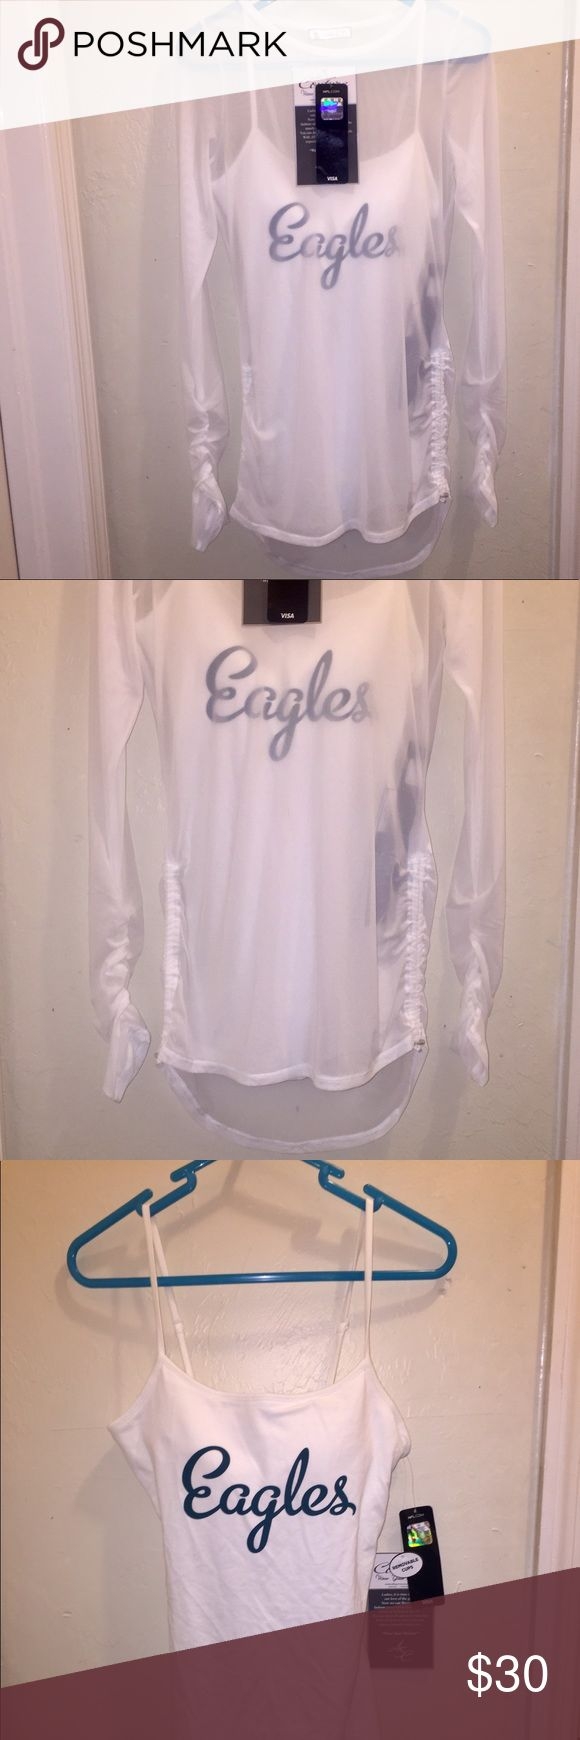 "NFL Philadelphia Eagles Double Team Tank/Shirt NWT This white sheer mesh tunic looks fabulous wherever you go! The sleeves have 6"" of ruching & the side seams have 8"" of ruching that allow adjustments that create the length that is just right for you. Underneath is a stretch knit, body fitting cami with a built in shelf bra with removable pads & adjustable straps. The cami hits mid hip with a generous bottom opening to stay down. The front chest has Eagles in a fun script & just above the…"